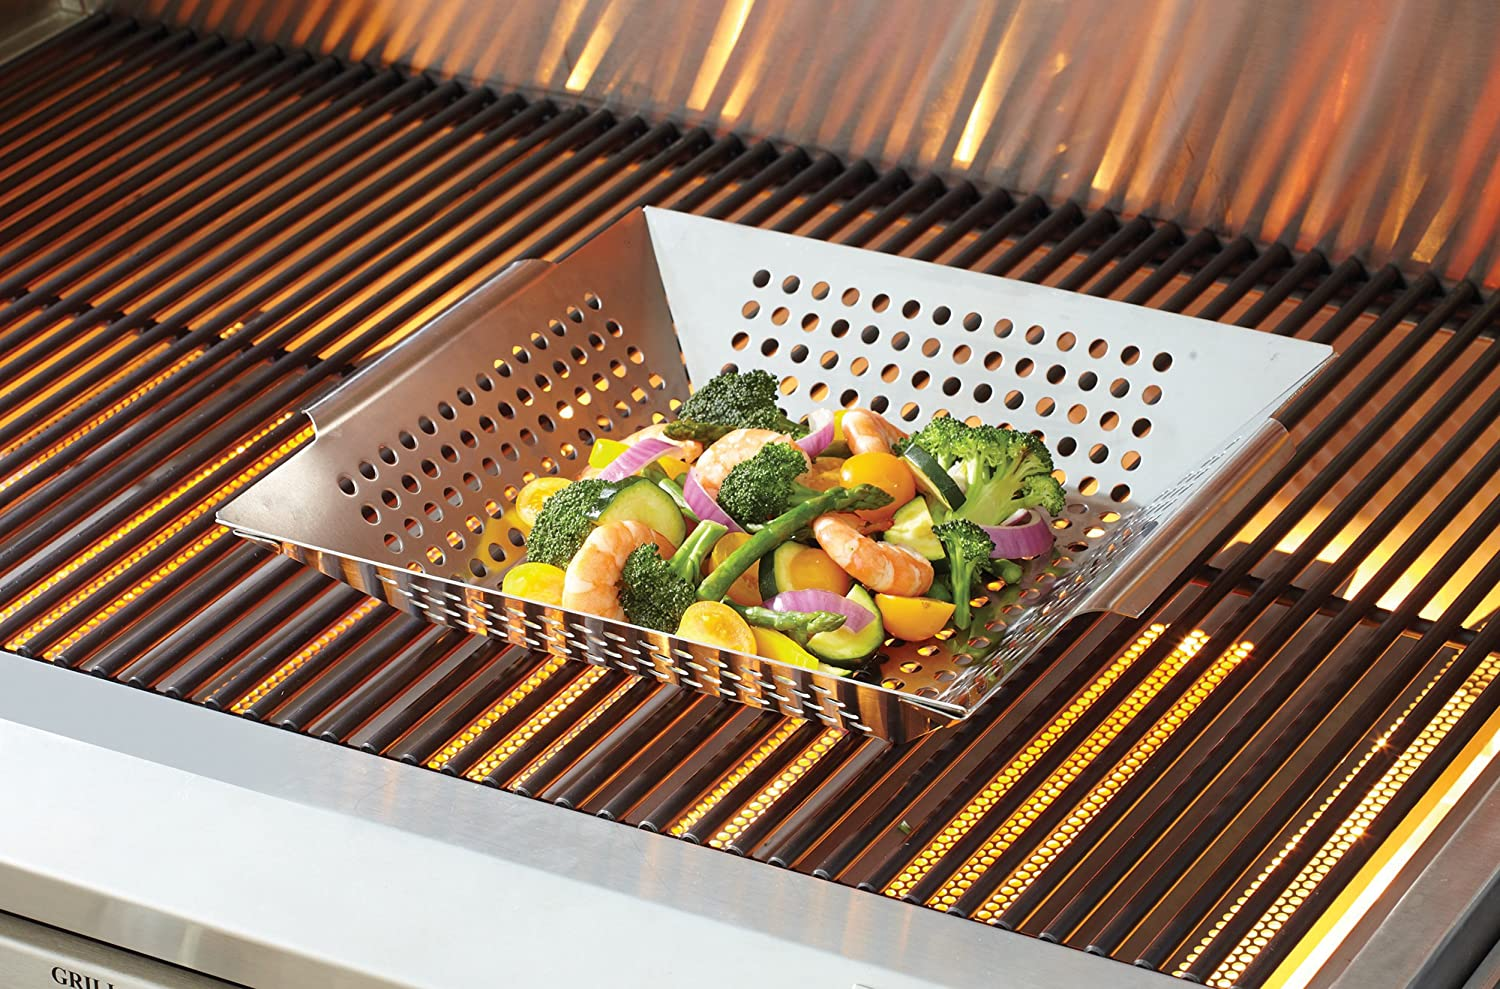 Bar-B-Q Platinum Prestige Stainless Steel Vegetable Grill Basket Perfect for Cooking Crispy Vegetables Fish Great for Cookouts and Camping Mr and Meats on the Grill or BBQ Built in Handles